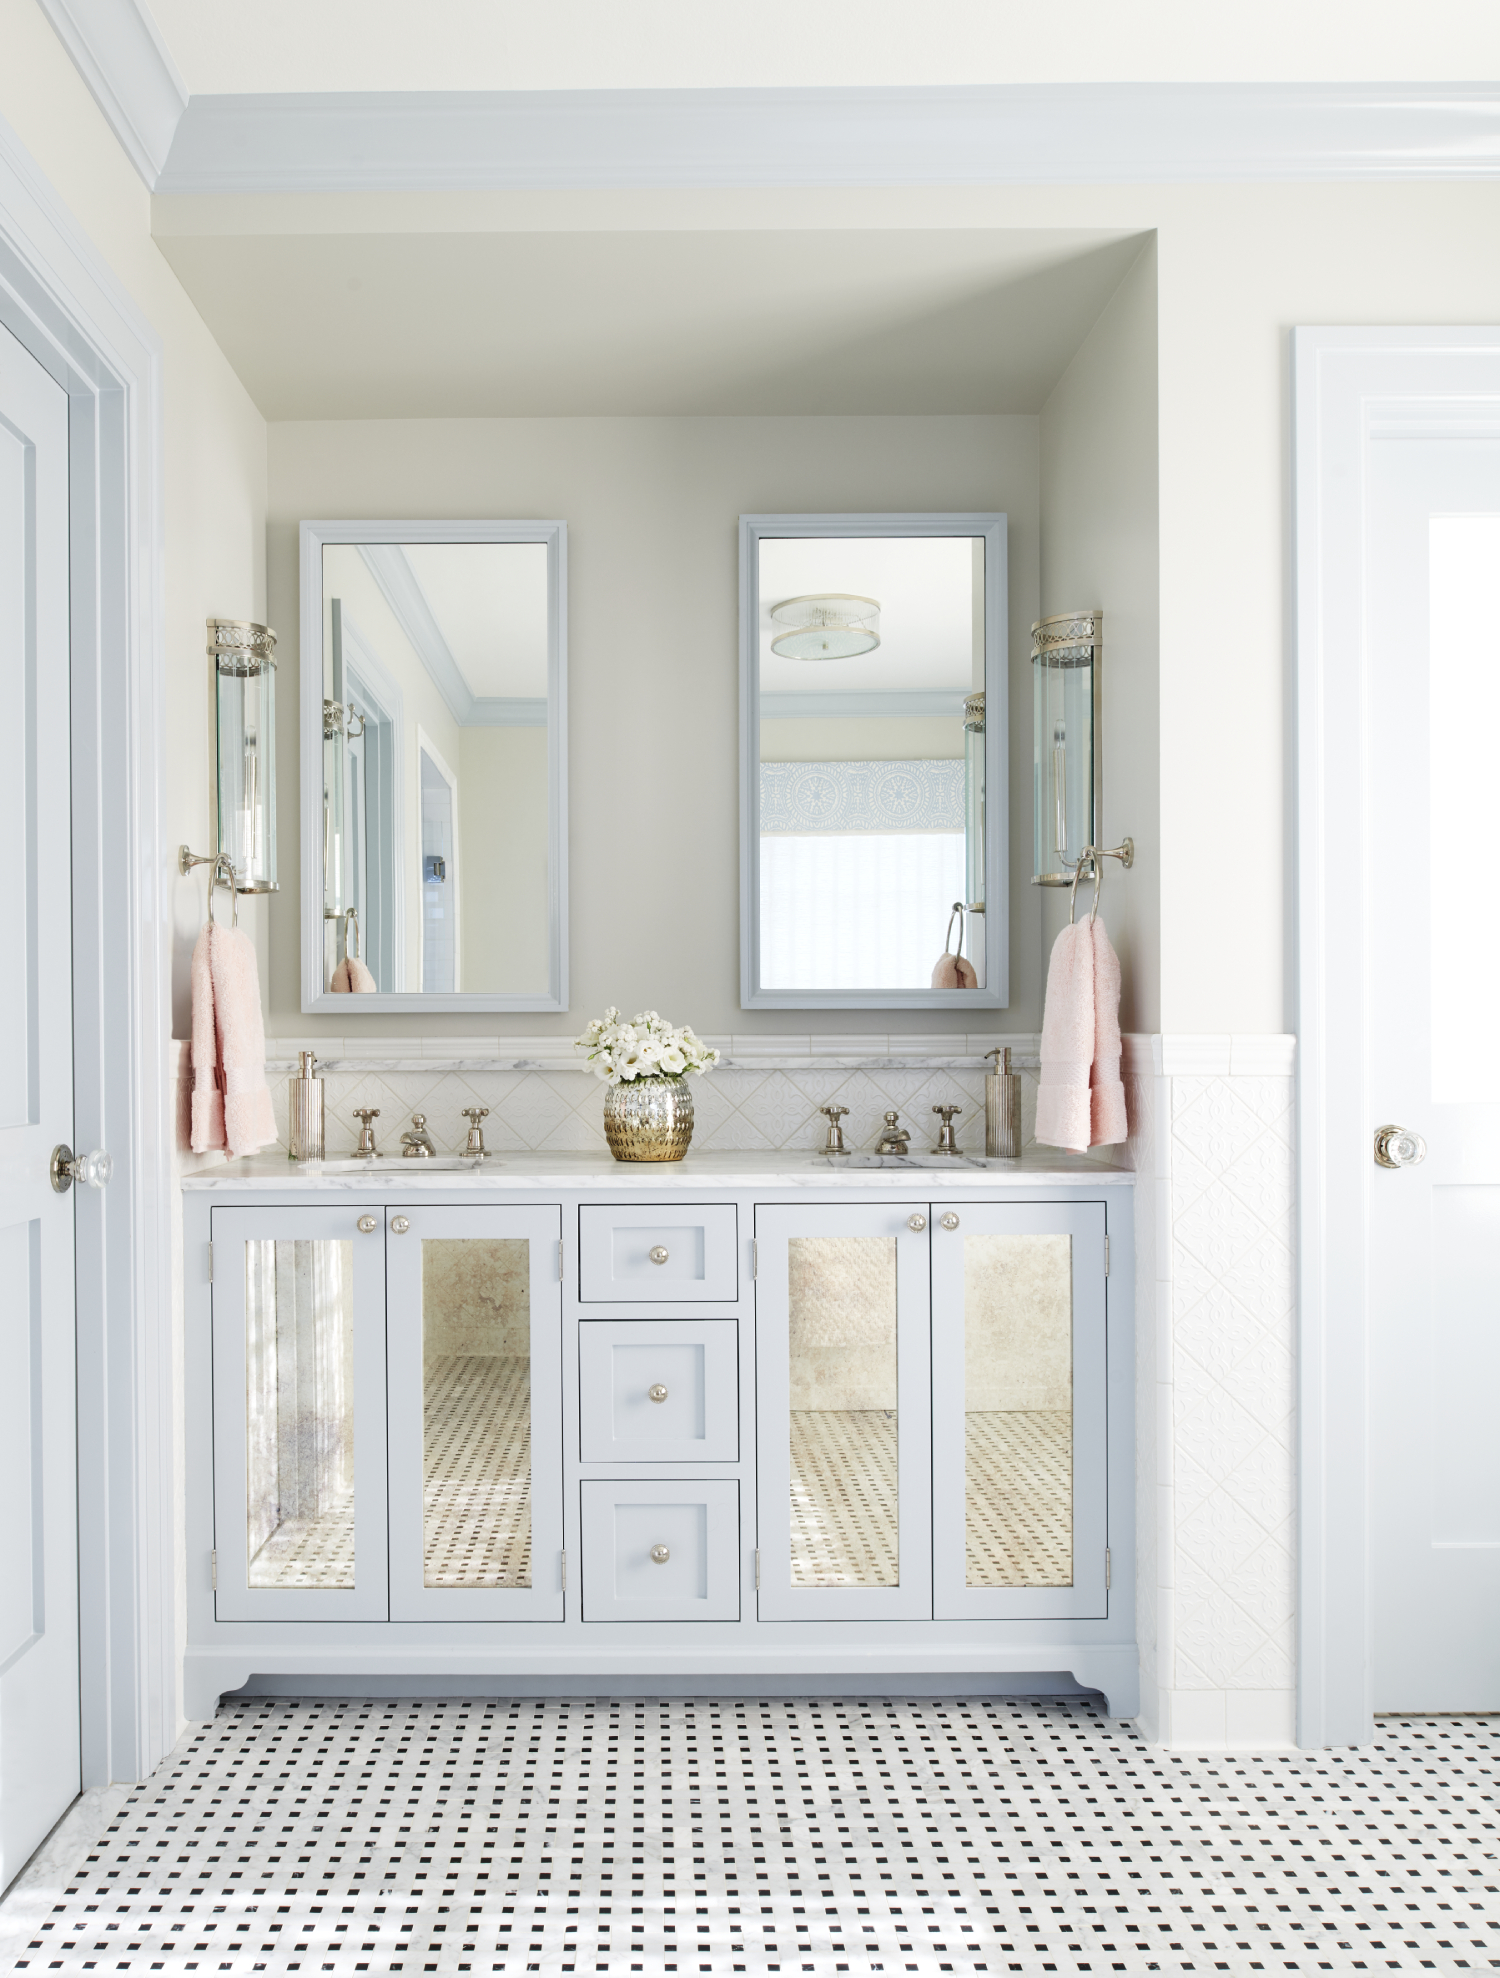 Bathroom vanity in soft pastels with mirrored cabinet fronts